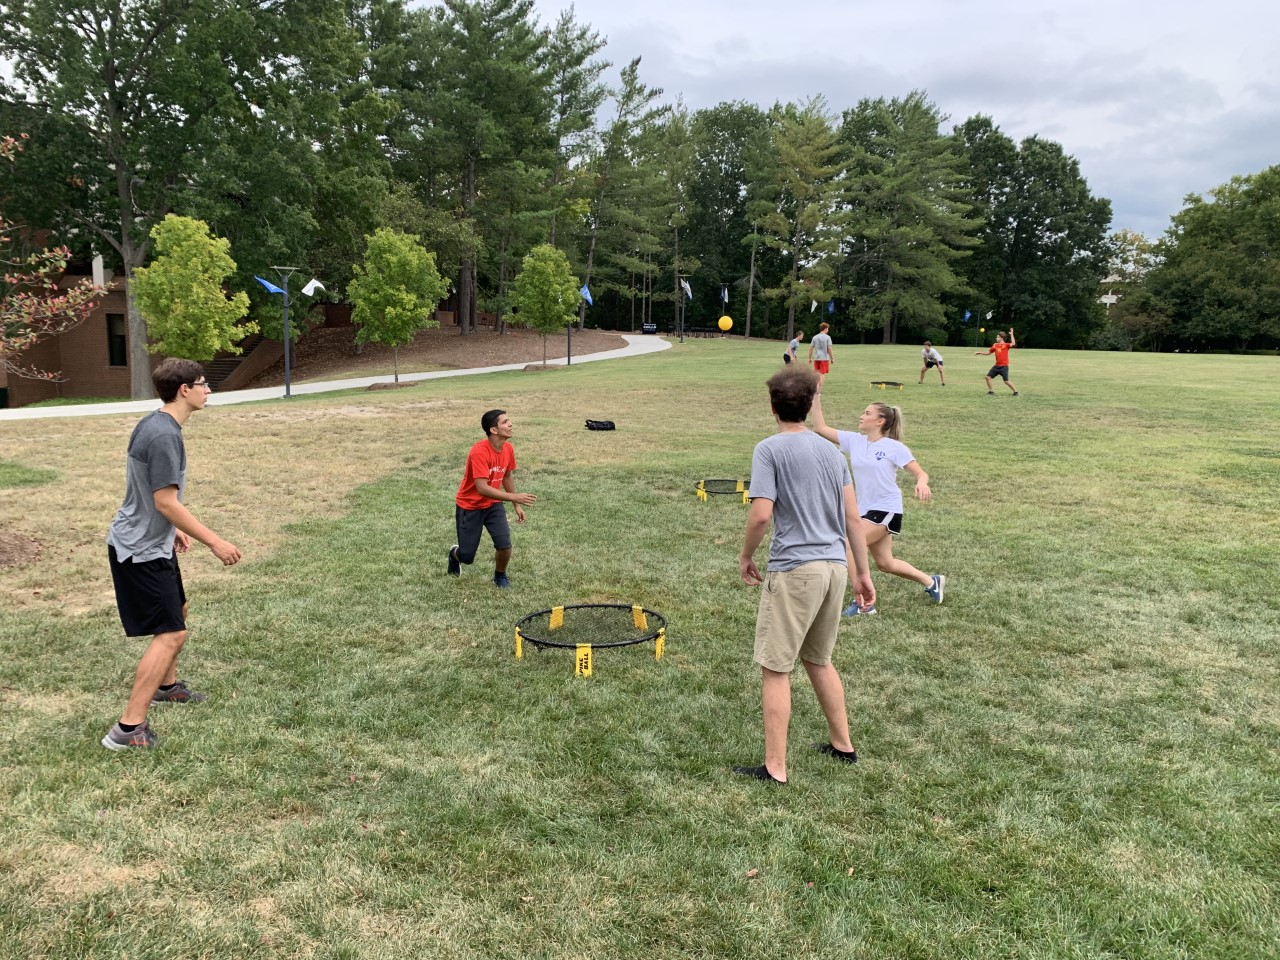 Students play Spike Ball together on a green field.